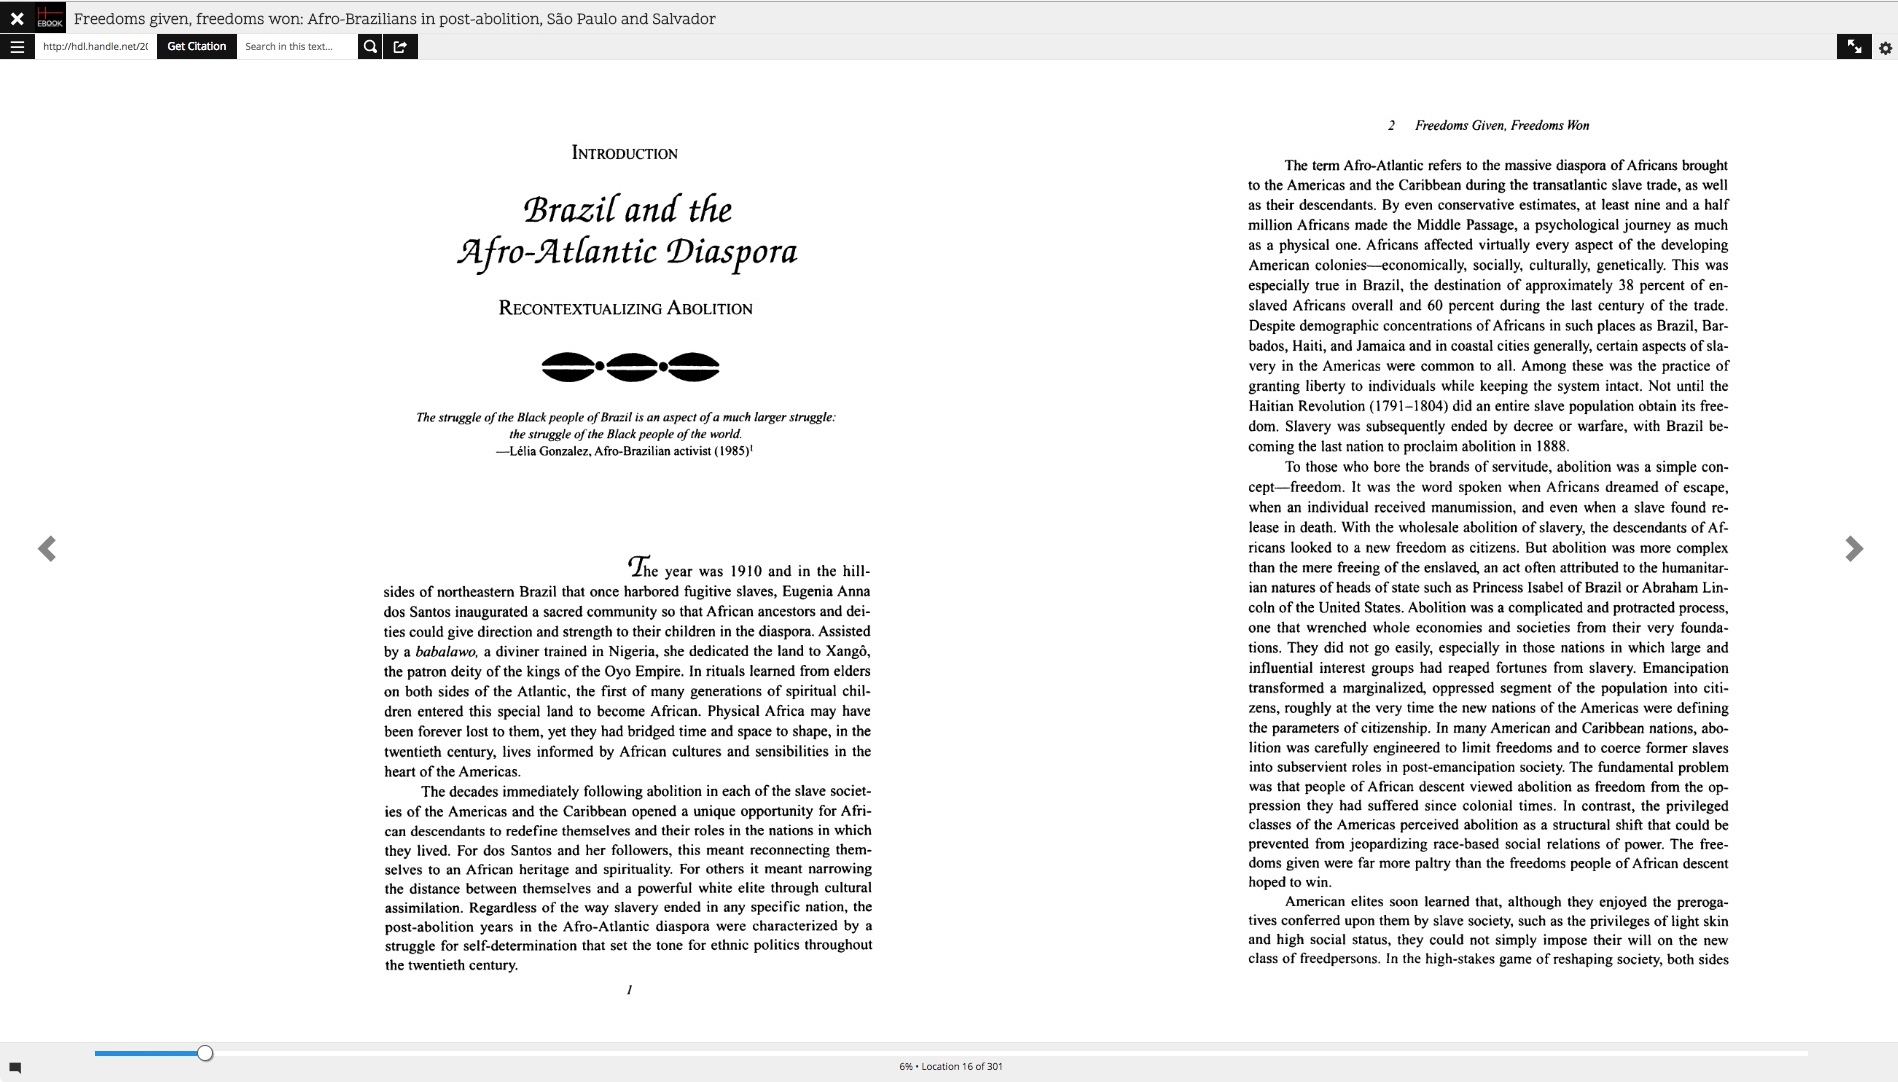 A screenshot of the new e-reader application, displaying two page images in the e-reader.